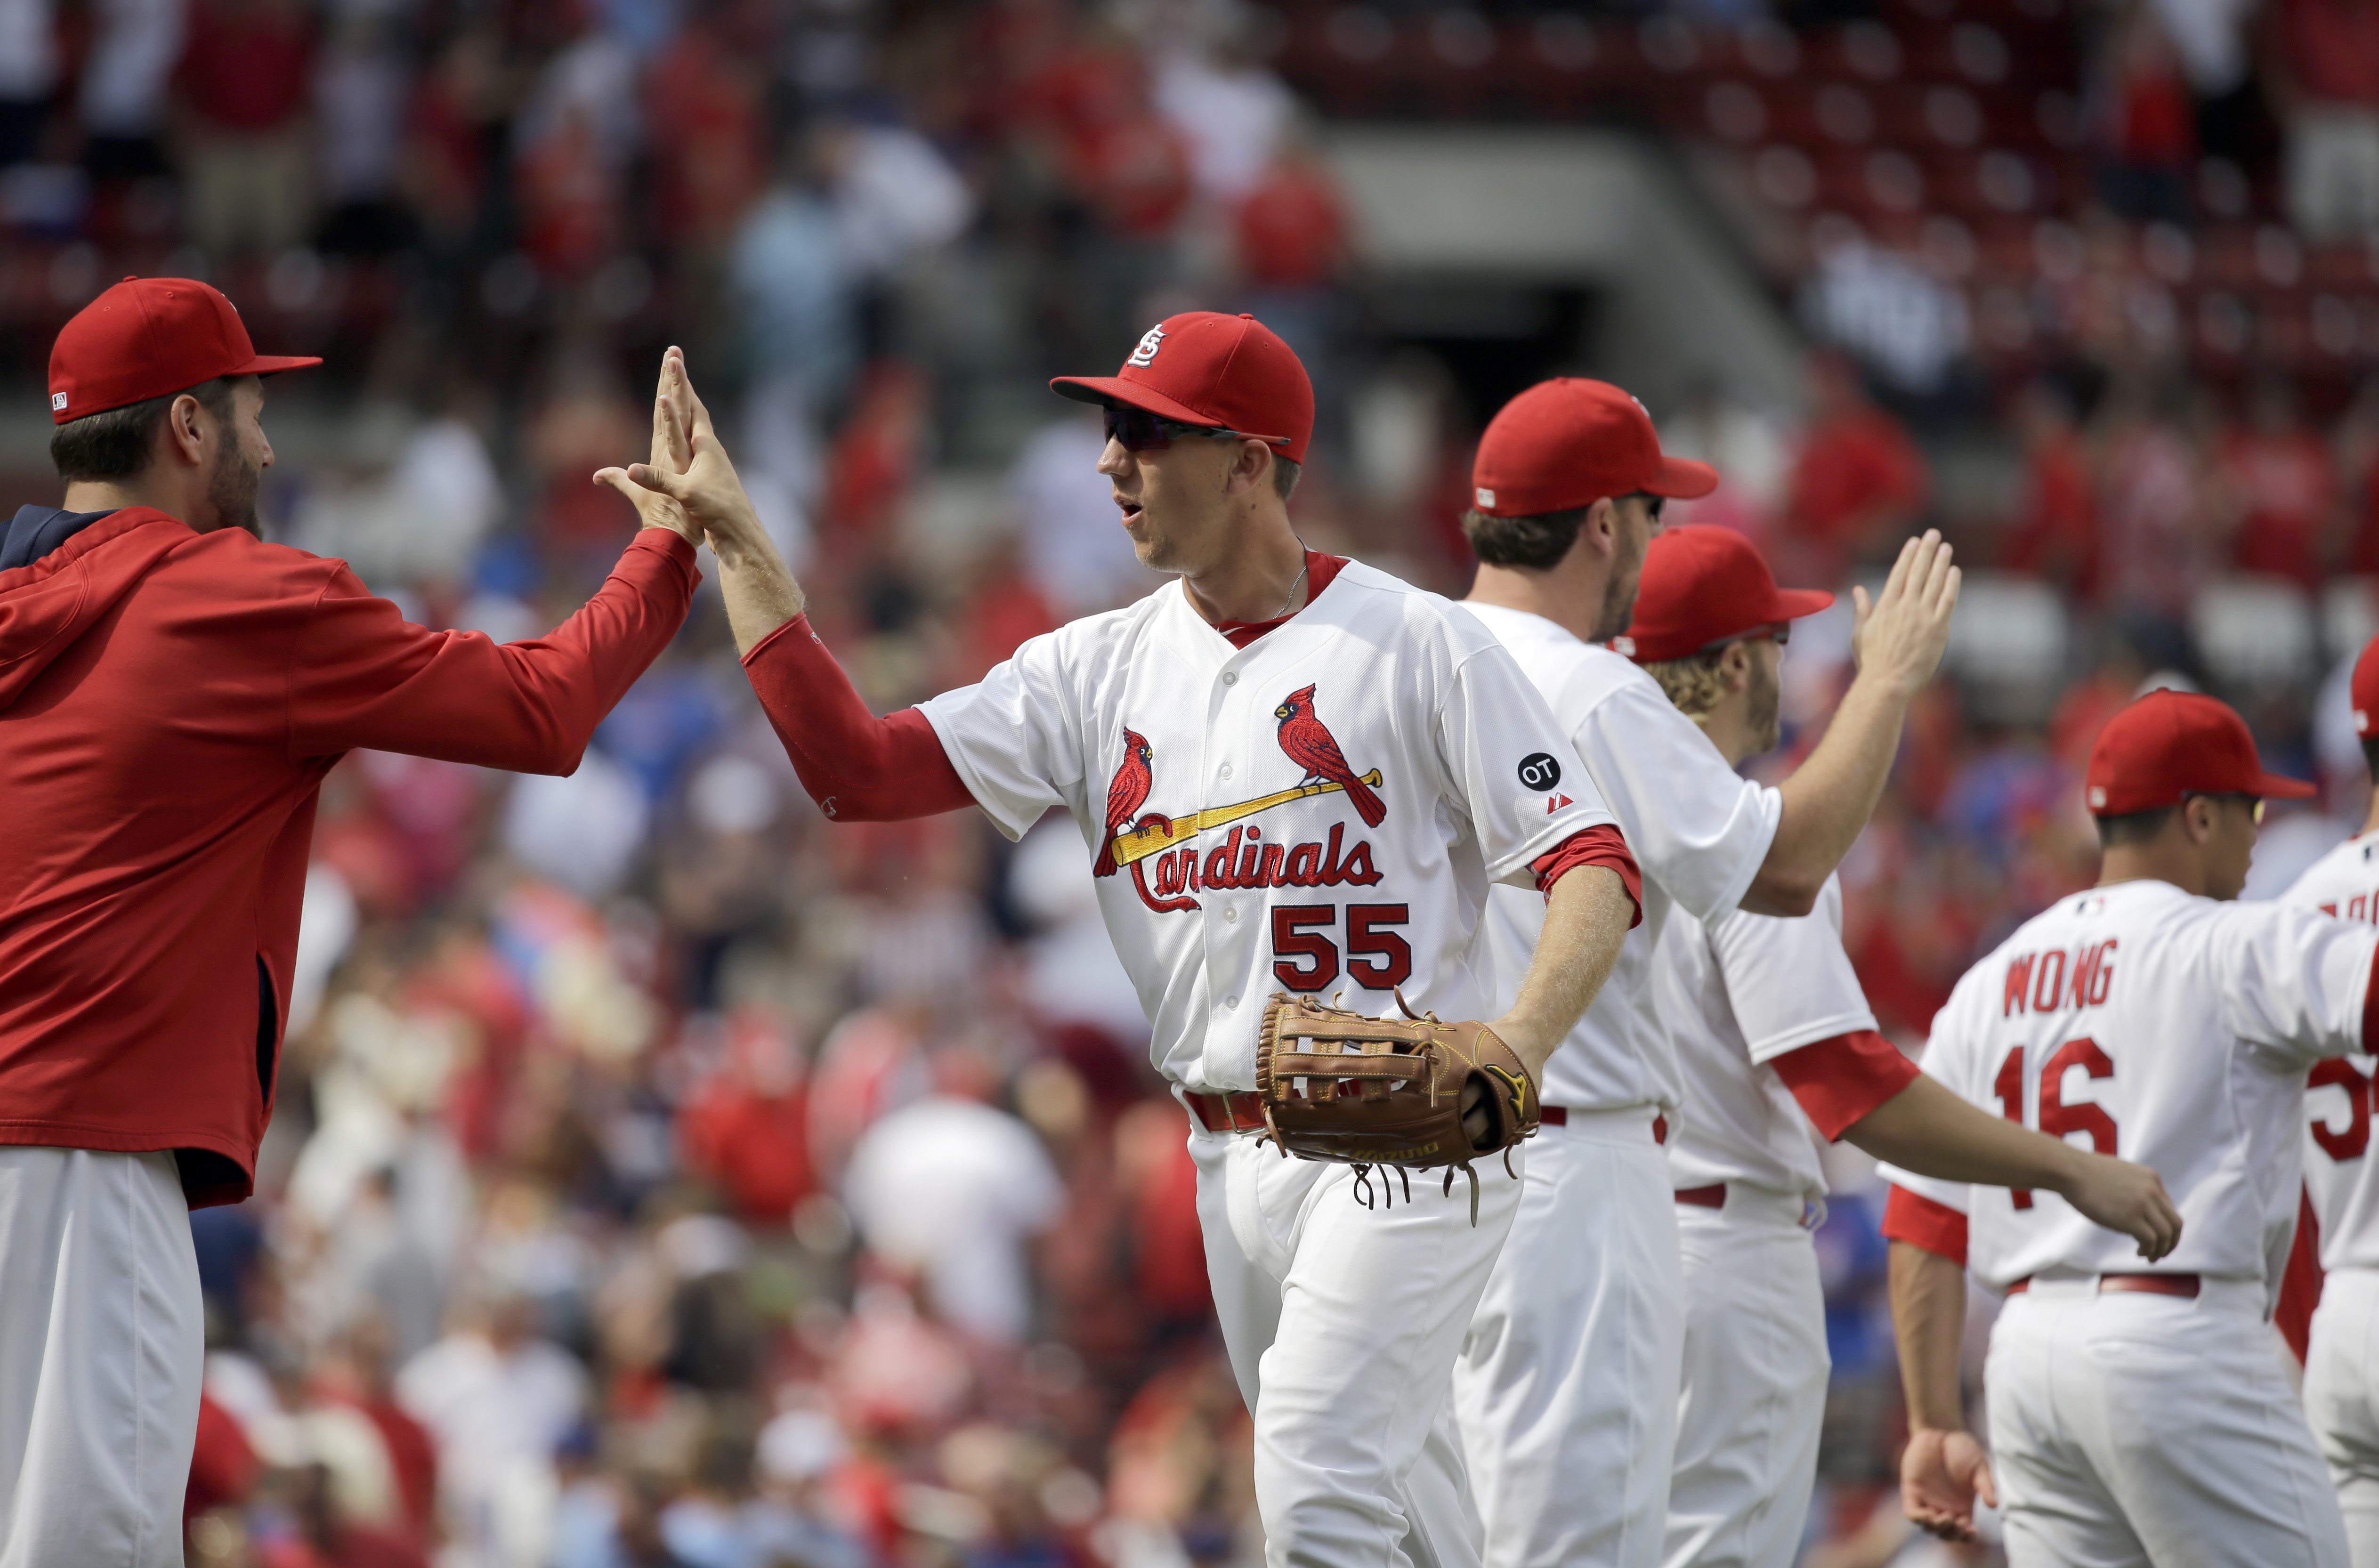 St. Louis Cardinals' Stephen Piscotty (55) gets a high-five from teammate Lance Lynn, left, as they celebrate with teammates following their 4-3 victory over the Chicago Cubs in a baseball game, Wednesday, Sept. 9, 2015, in St. Louis. (AP Photo/Jeff Rober